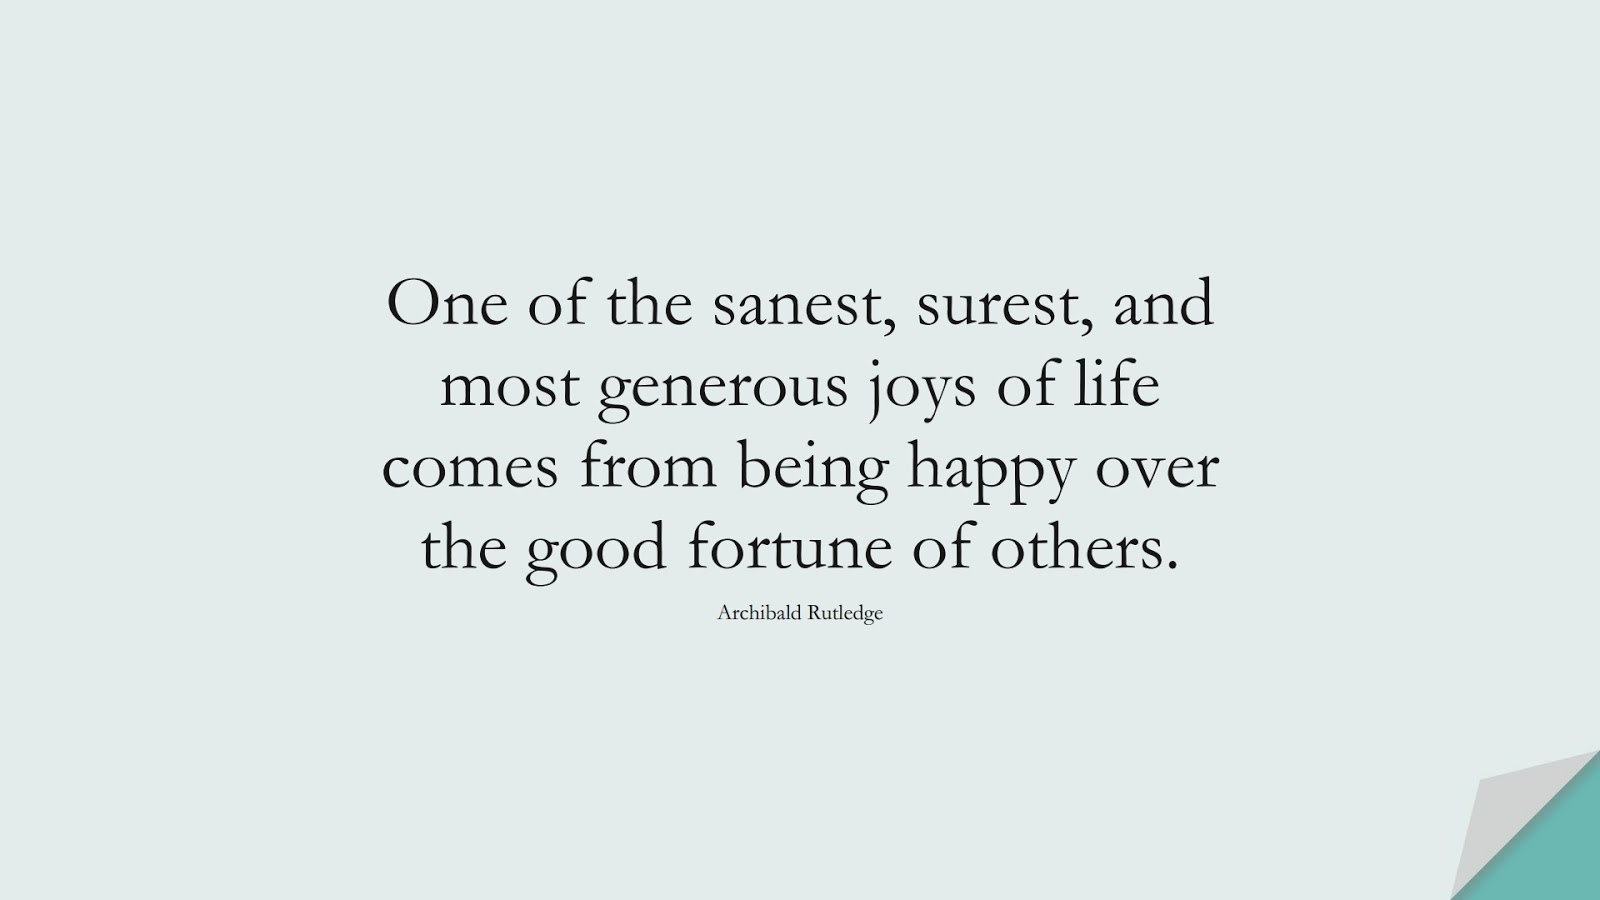 One of the sanest, surest, and most generous joys of life comes from being happy over the good fortune of others. (Archibald Rutledge);  #SpiritQuotes